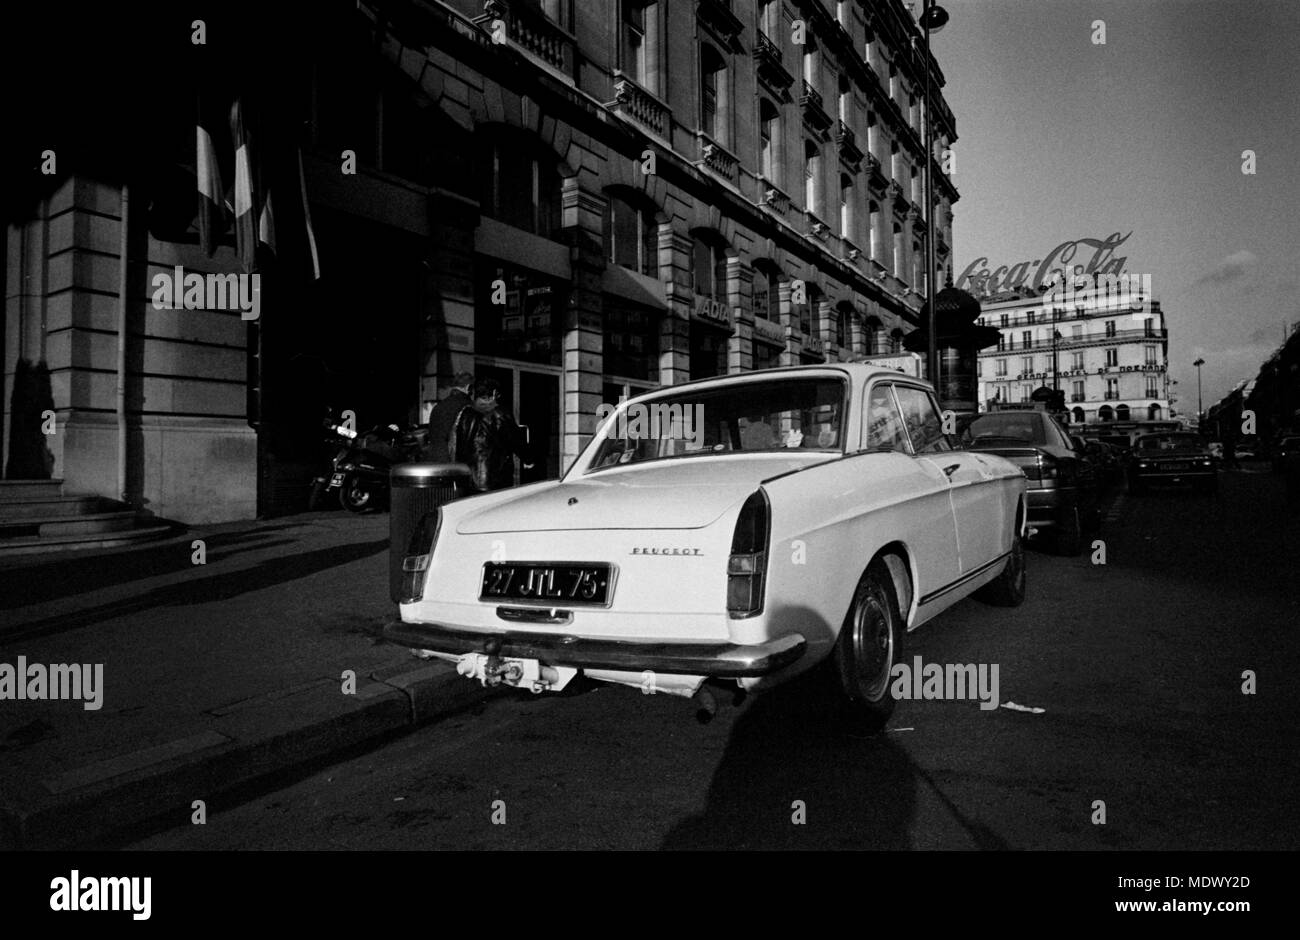 AJAXNETPHOTO. PARIS, FRANCE. - RARE CLASSIC - A PUGEOT 404 TWO-DOOR SALOON PARKED ON THE STREET NEAR ST.LAZARE. PHOTO:JONATHAN EASTLAND/AJAX REF:921015_35001 - Stock Image